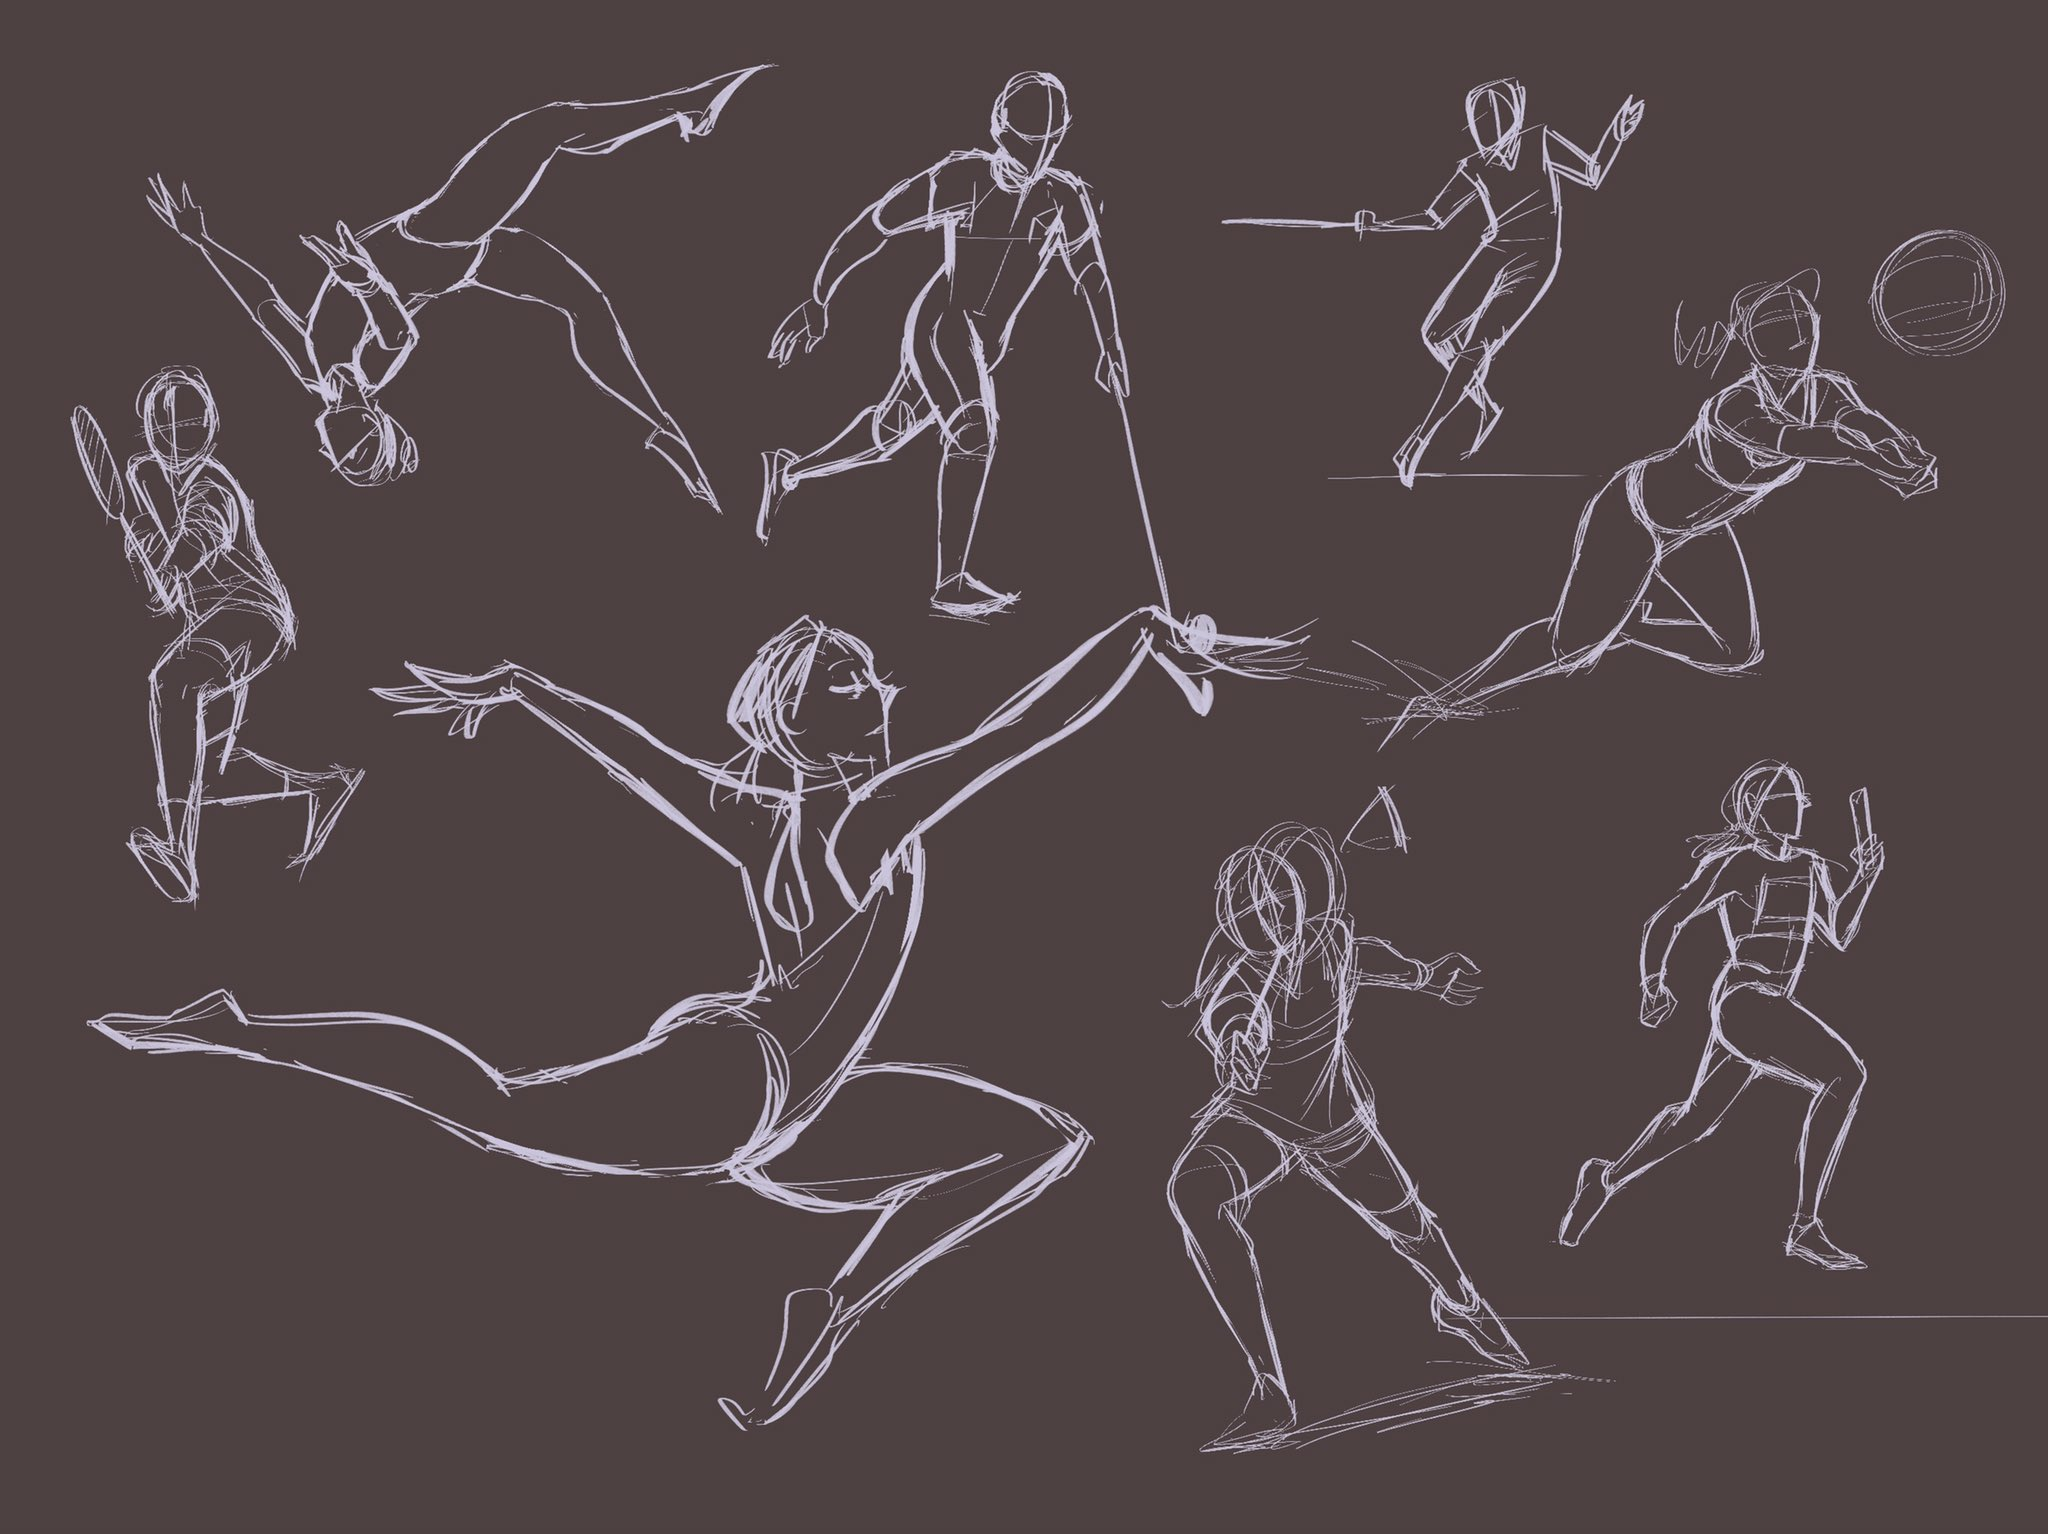 Various sketches of athletes in motion.